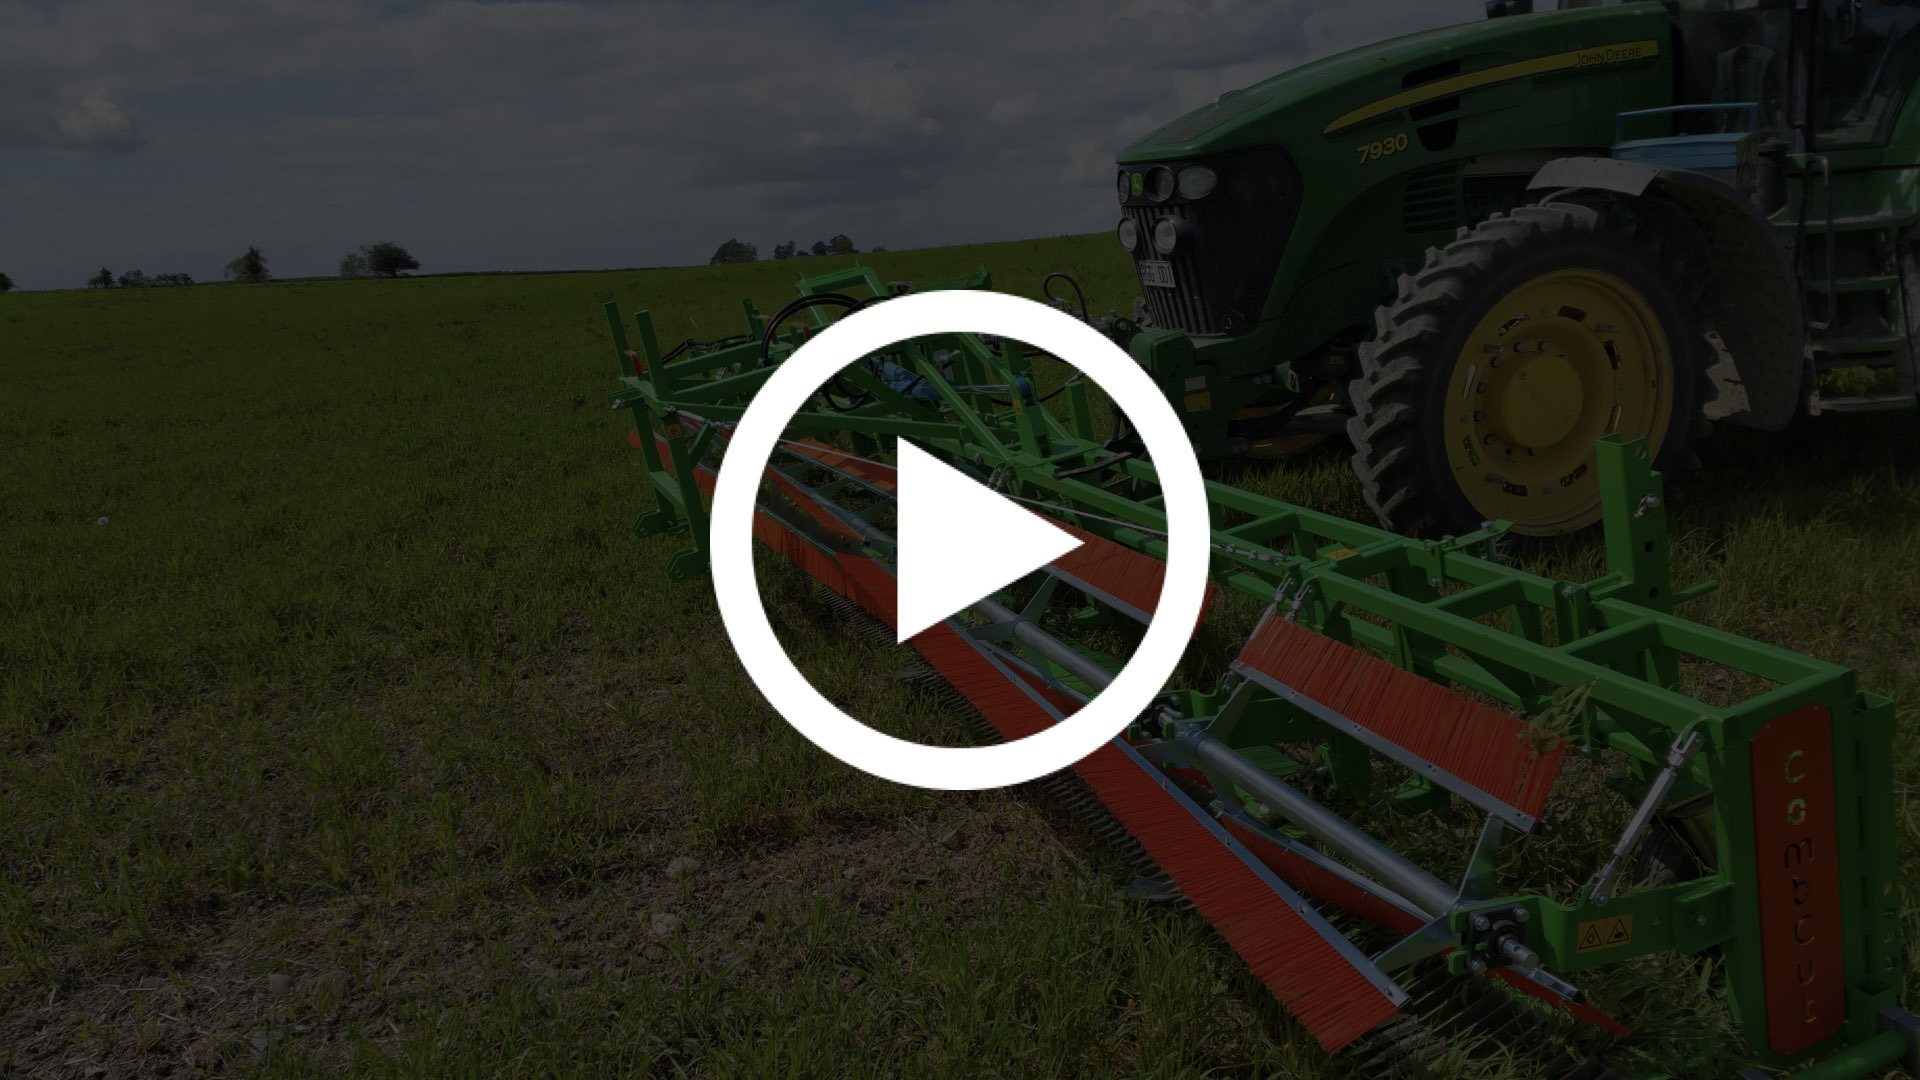 Video - Videos with instructions, tests and demos of CombCut.